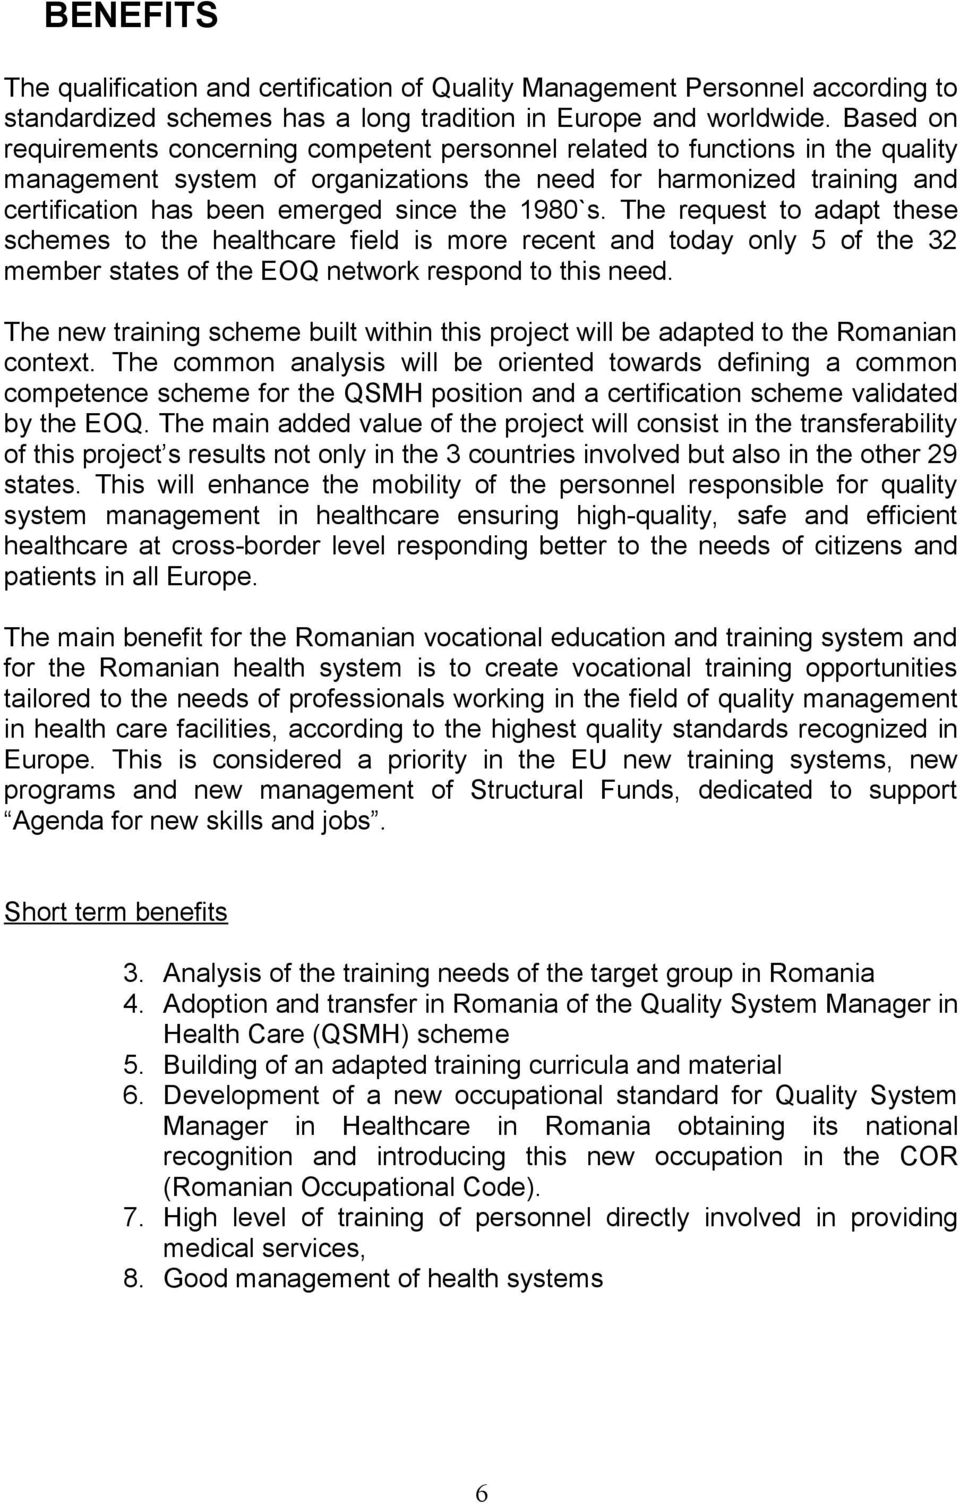 the 1980`s. The request to adapt these schemes to the healthcare field is more recent and today only 5 of the 32 member states of the EOQ network respond to this need.